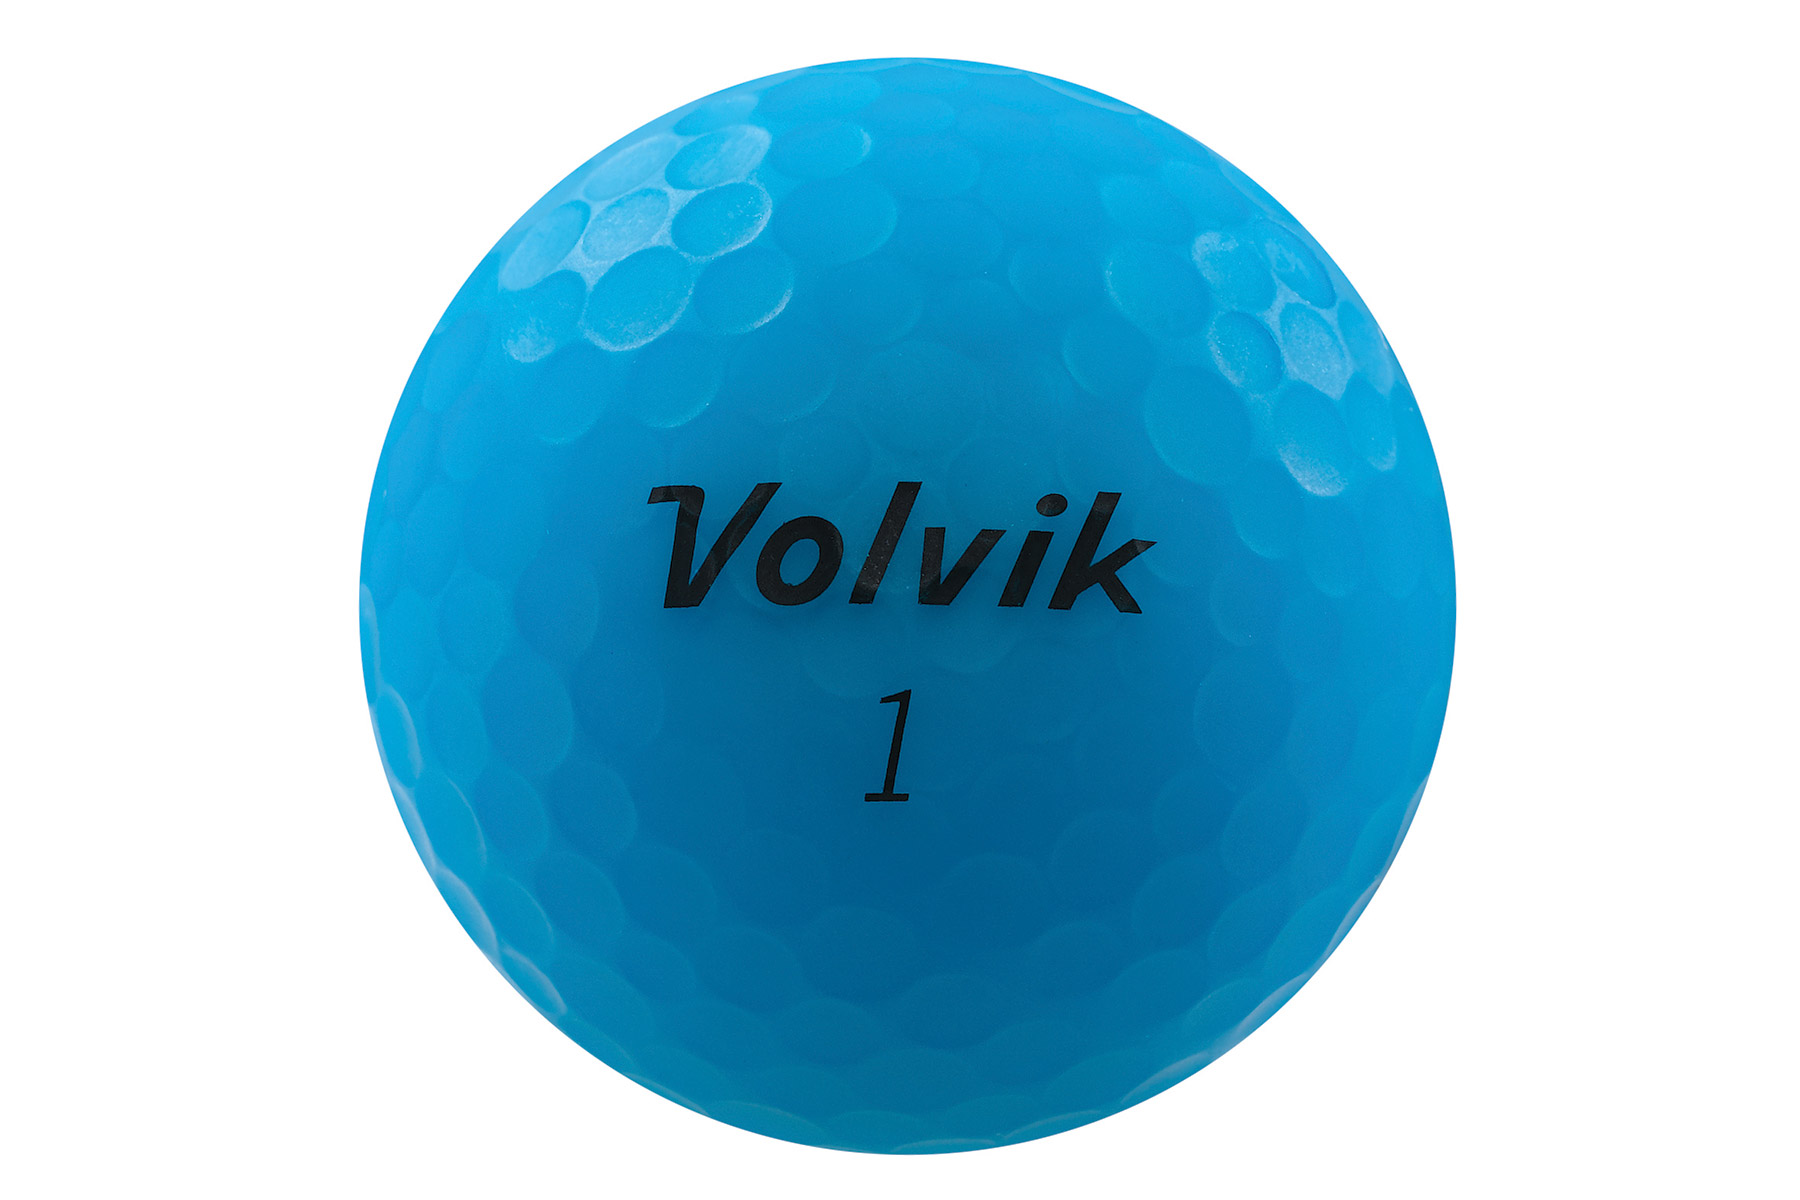 Bobby Grace Fat Lady Swings in addition R580 Xd moreover Callaway Chev Cart Bag 2015 likewise Volvik Vivid 12 Golf Balls 315308 as well Cobra Ultralight Stand Bag. on callaway golf cart bags sale